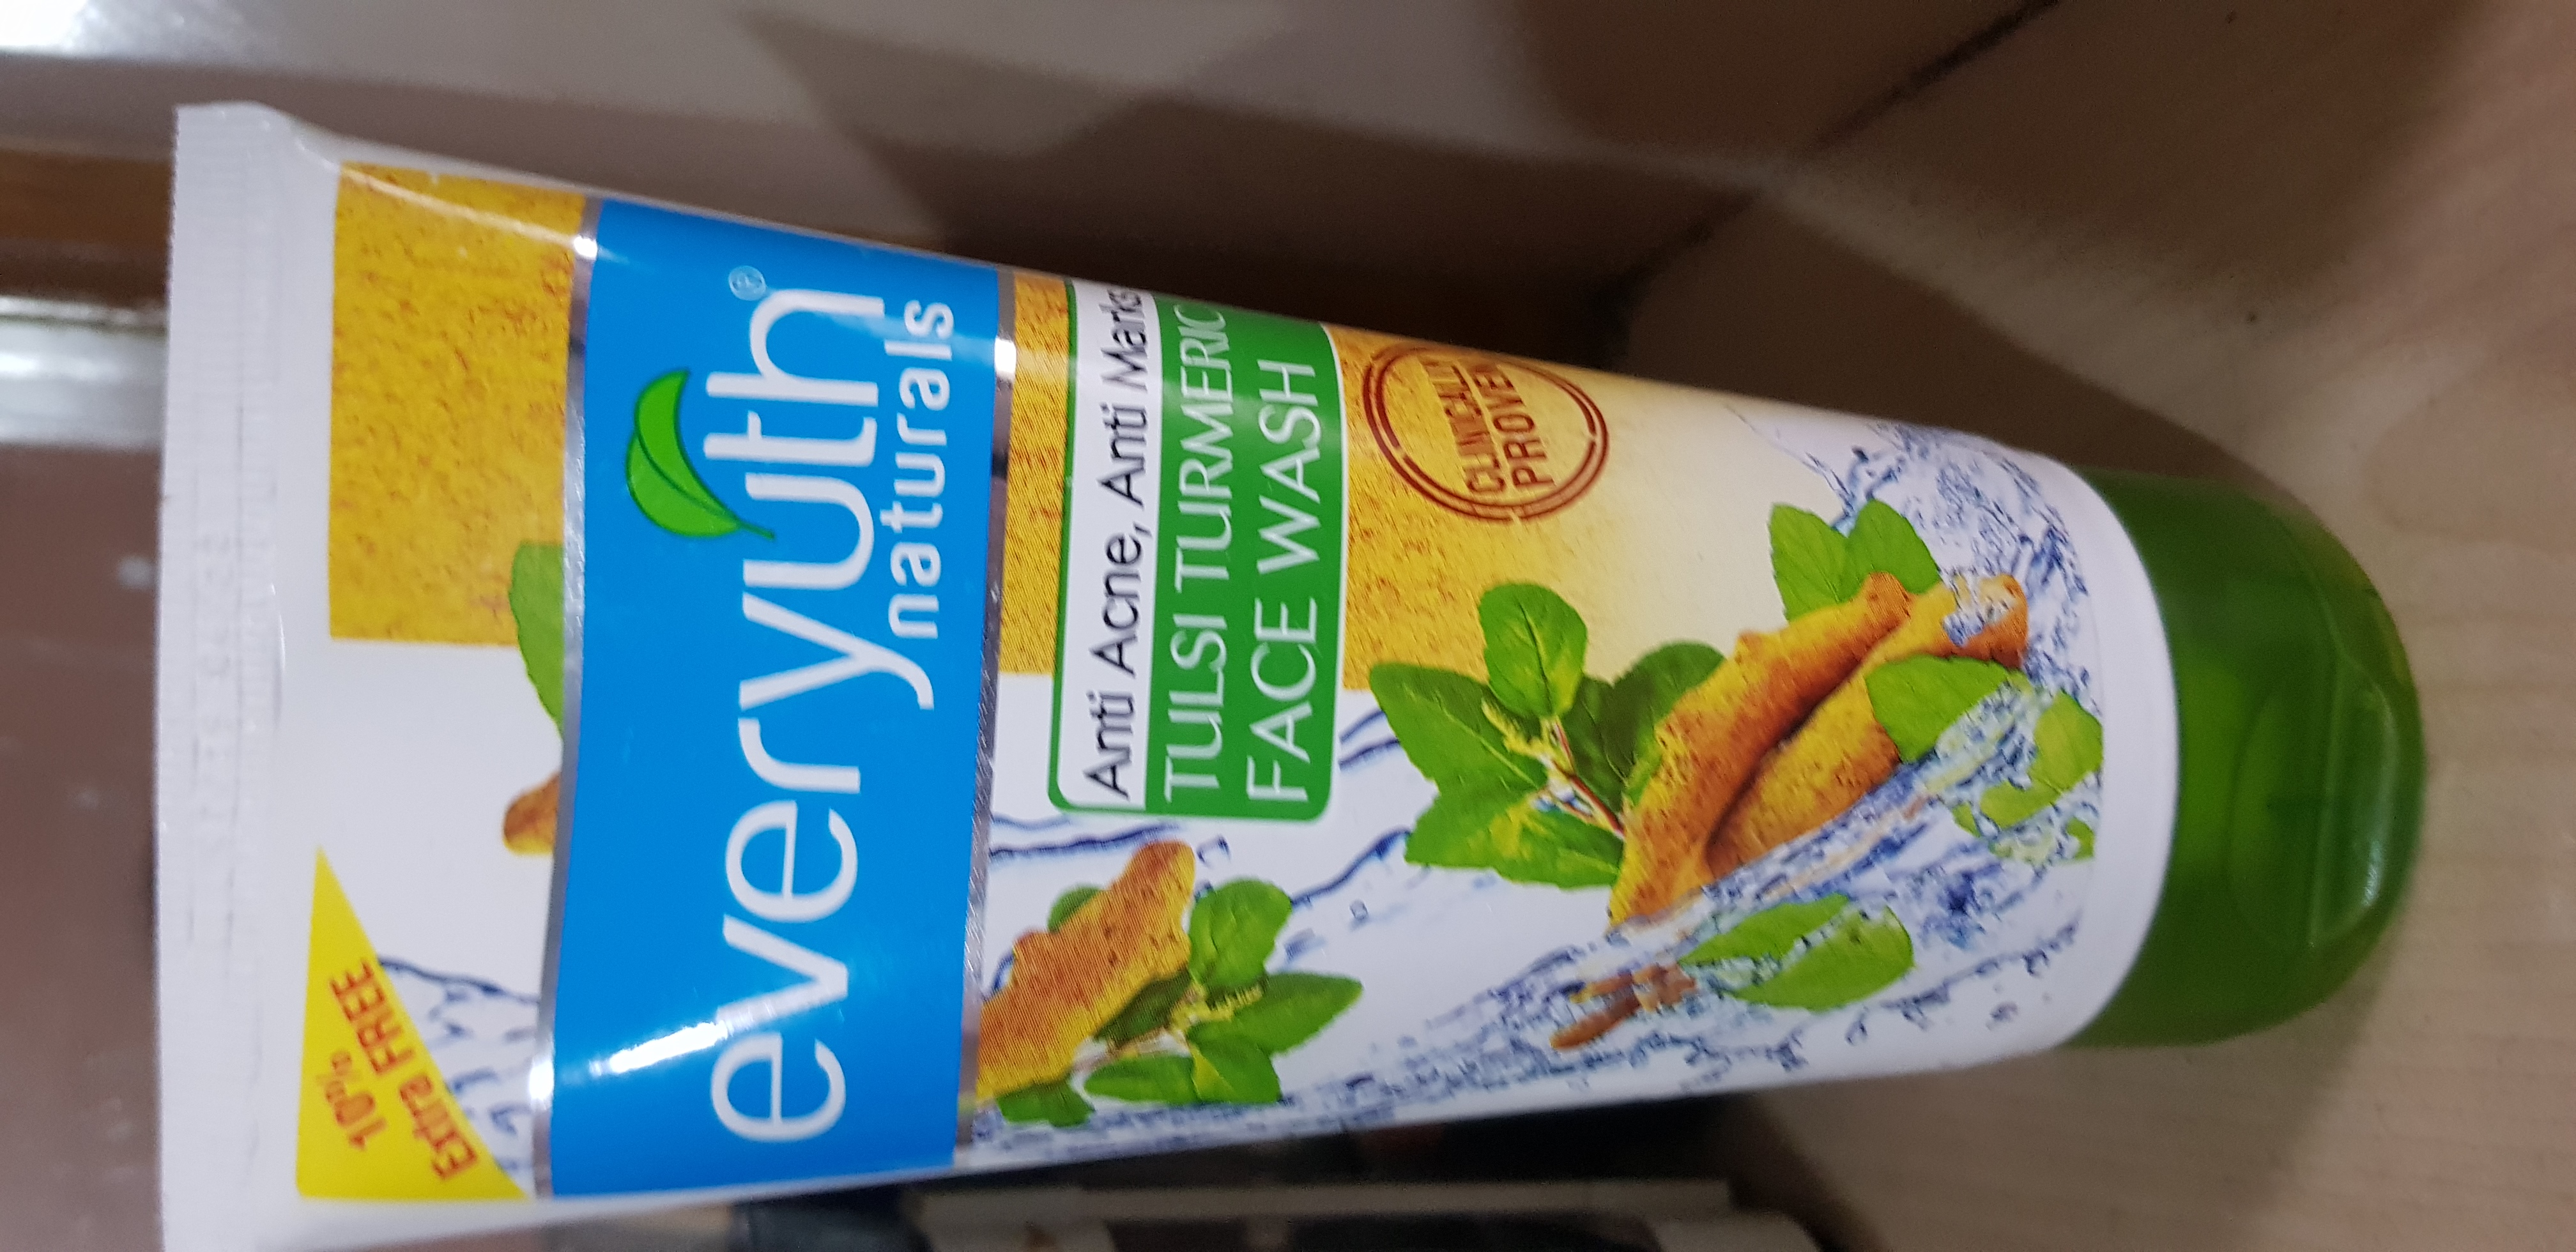 Everyuth Tulsi Turmeric Face Wash-Goodness of Nature!-By poonam_kakkar